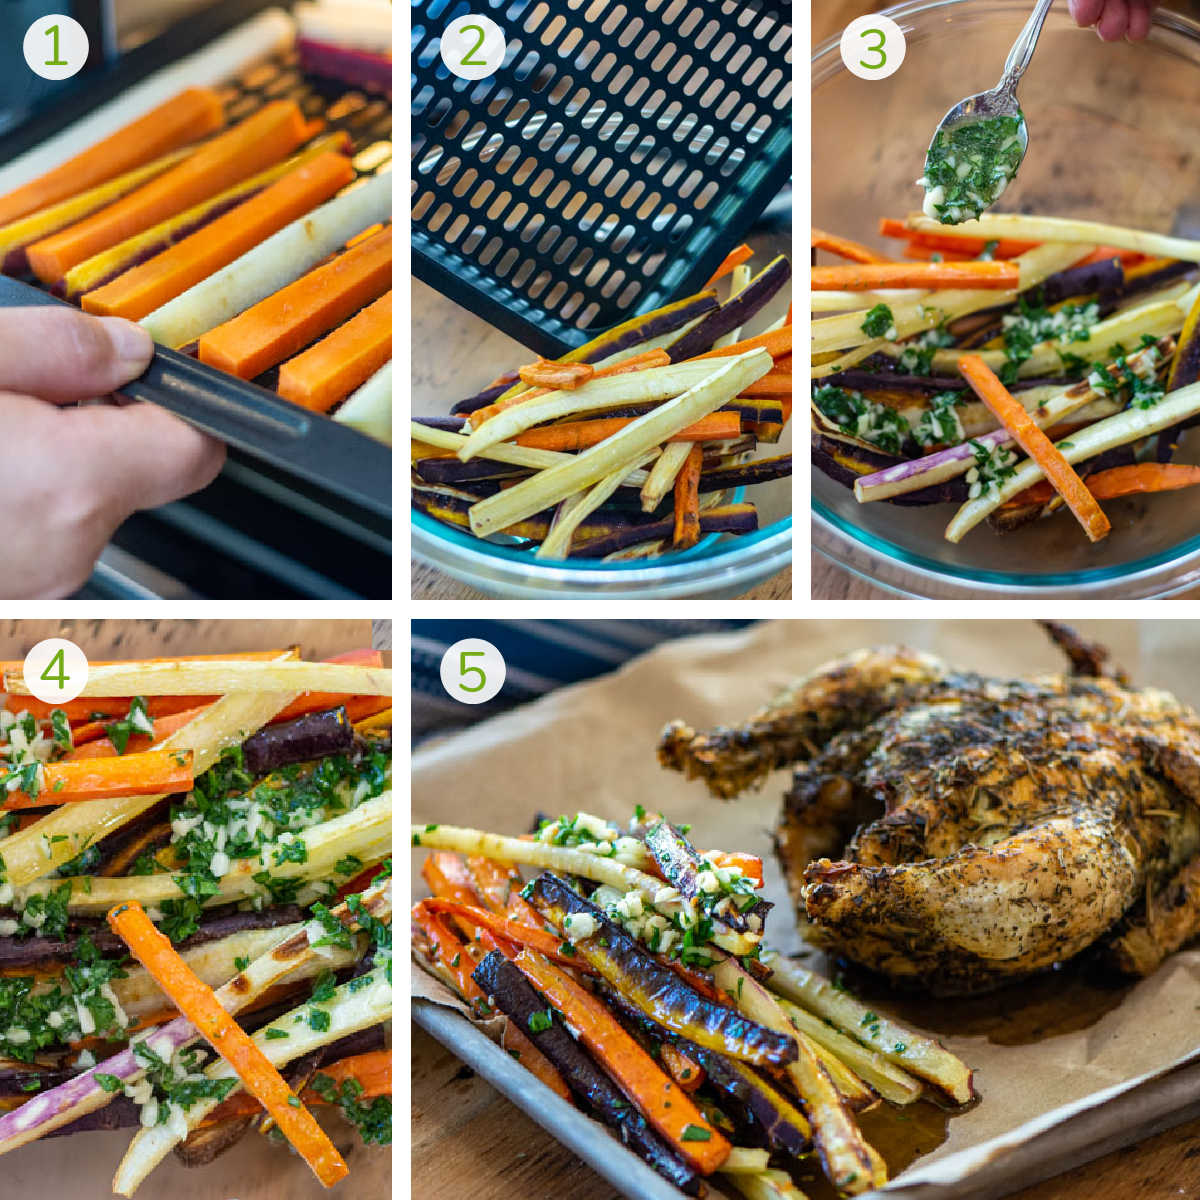 several process photos showing how to air fry the carrots and then mix with the garlic butter.